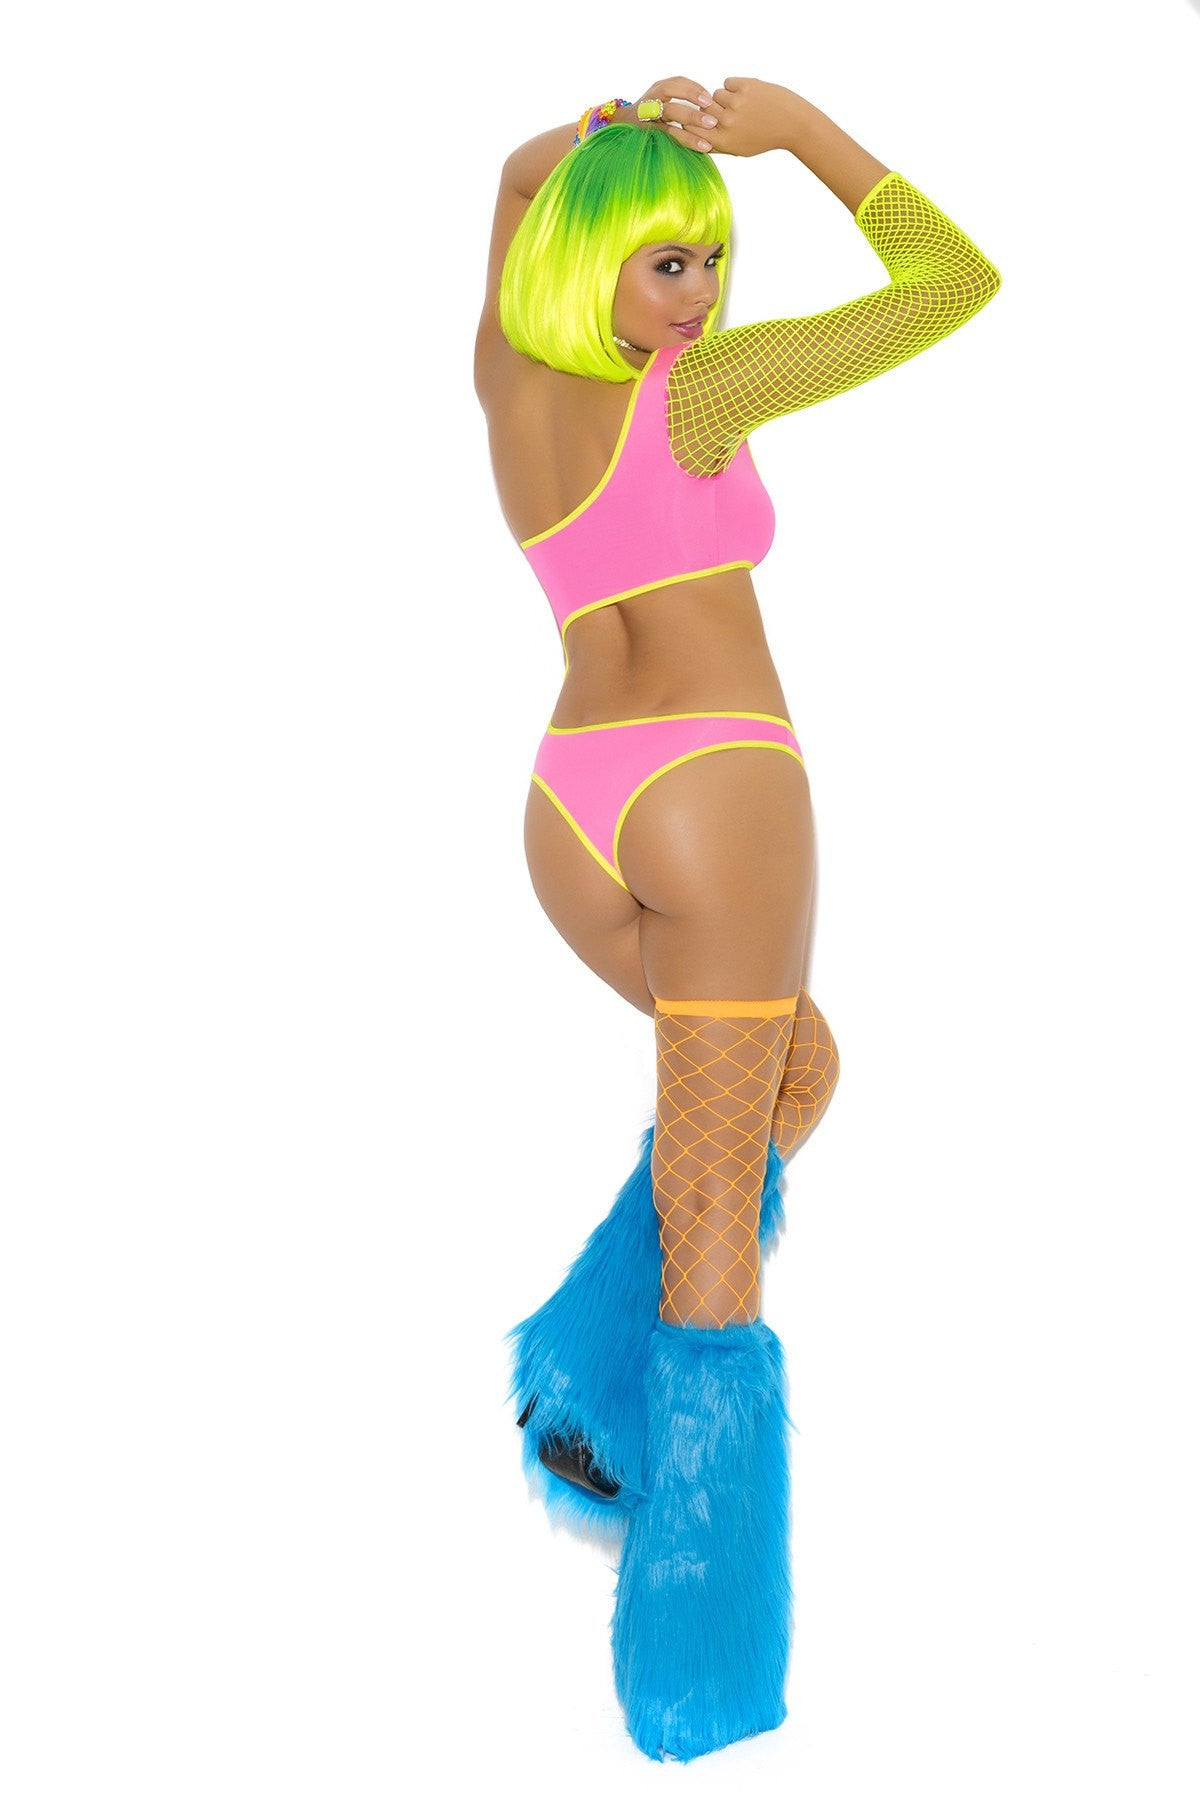 Rave - Sexy Neon Rave Girl One Shoulder 2 Tone Teddy